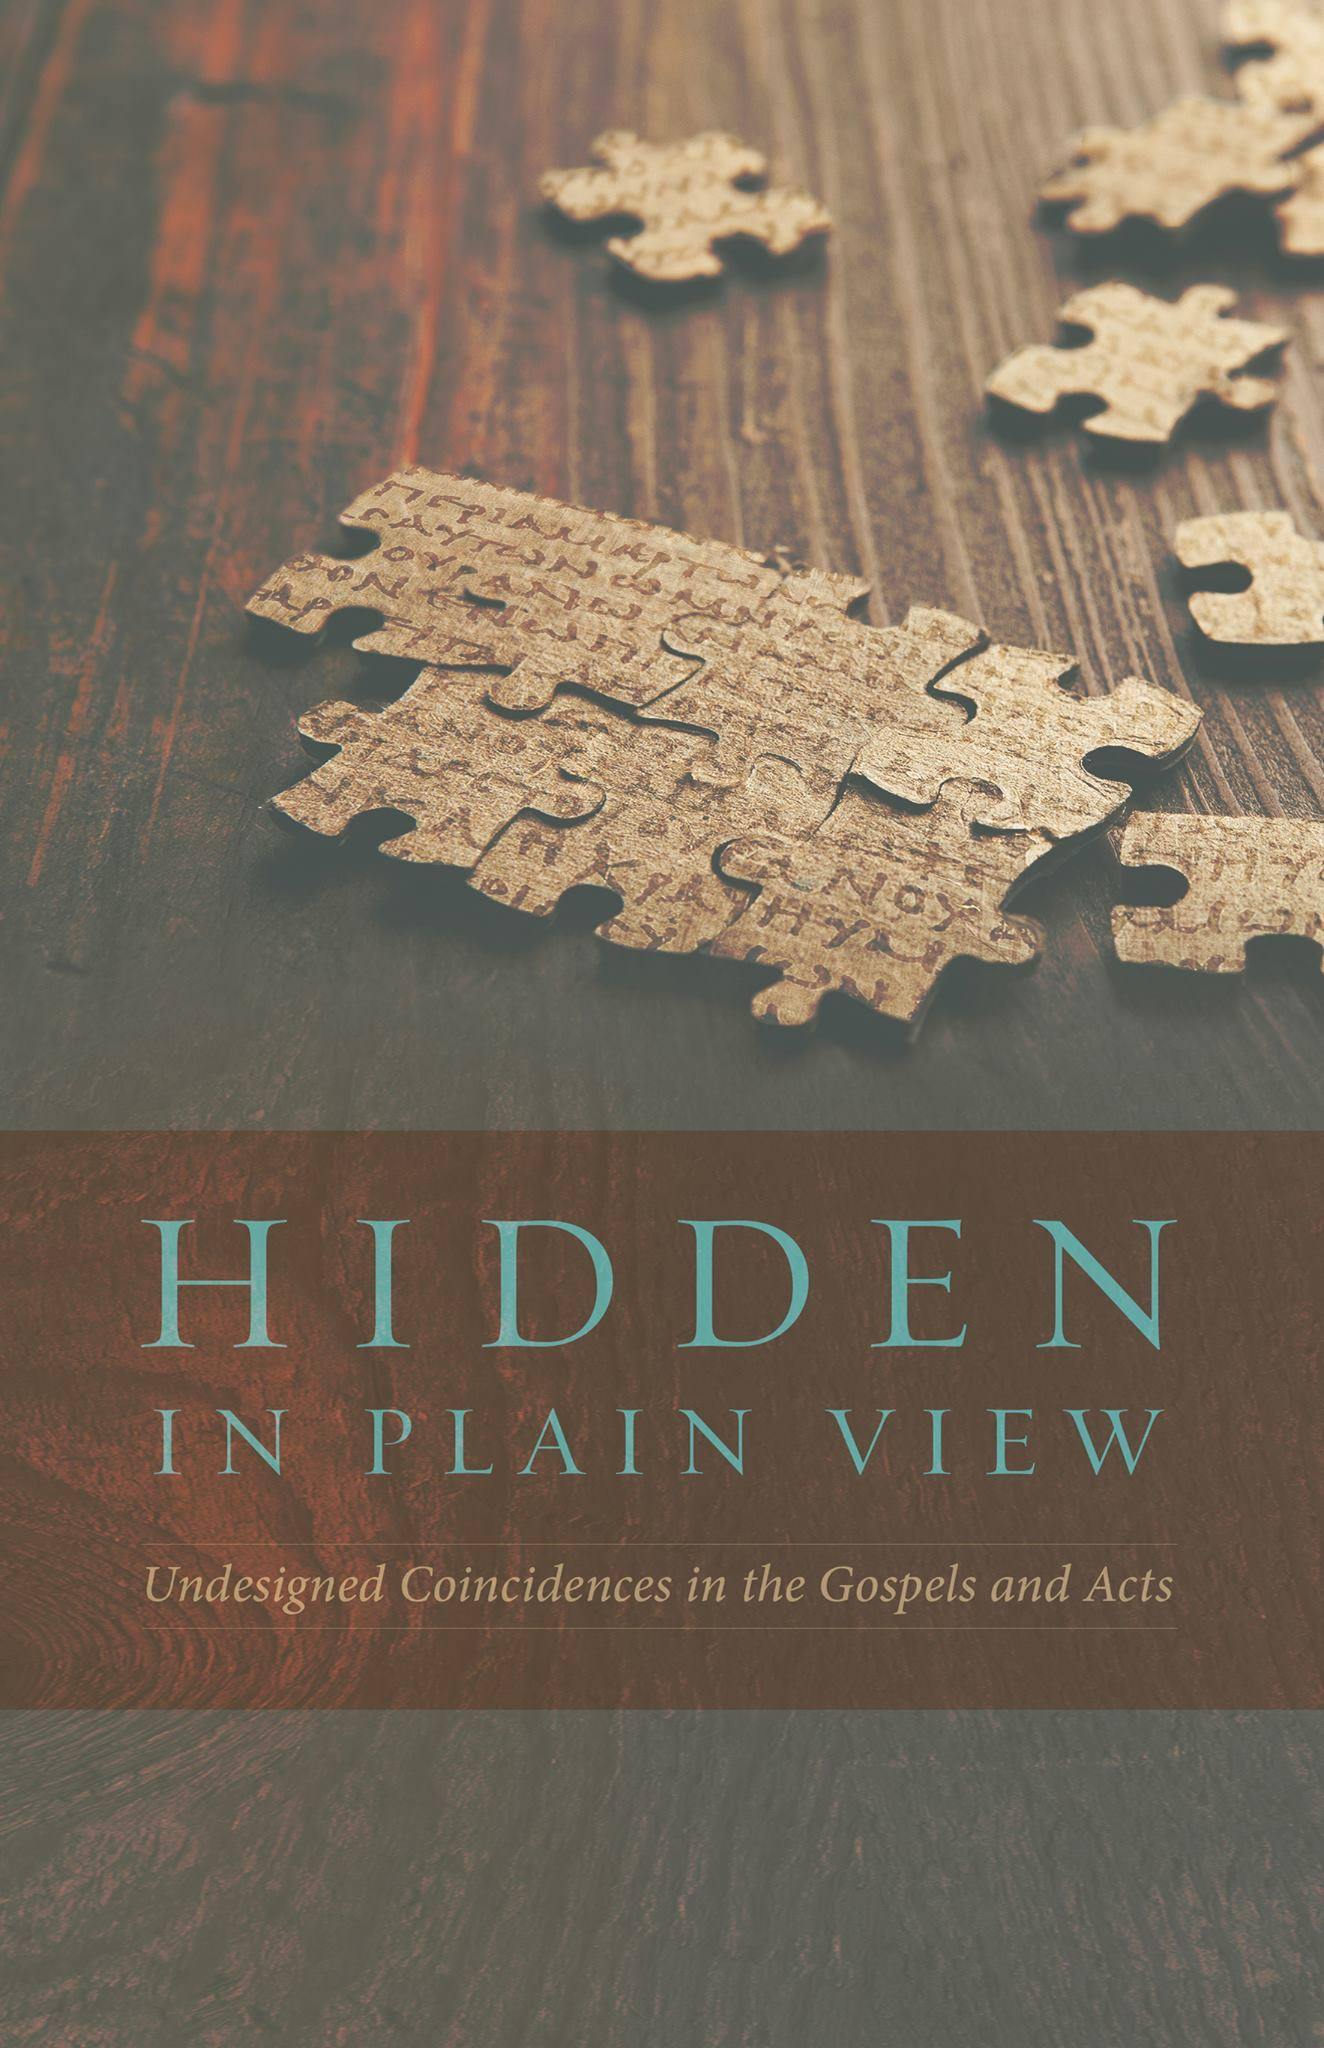 New Book Release: Hidden in Plain View by Lydia McGrew